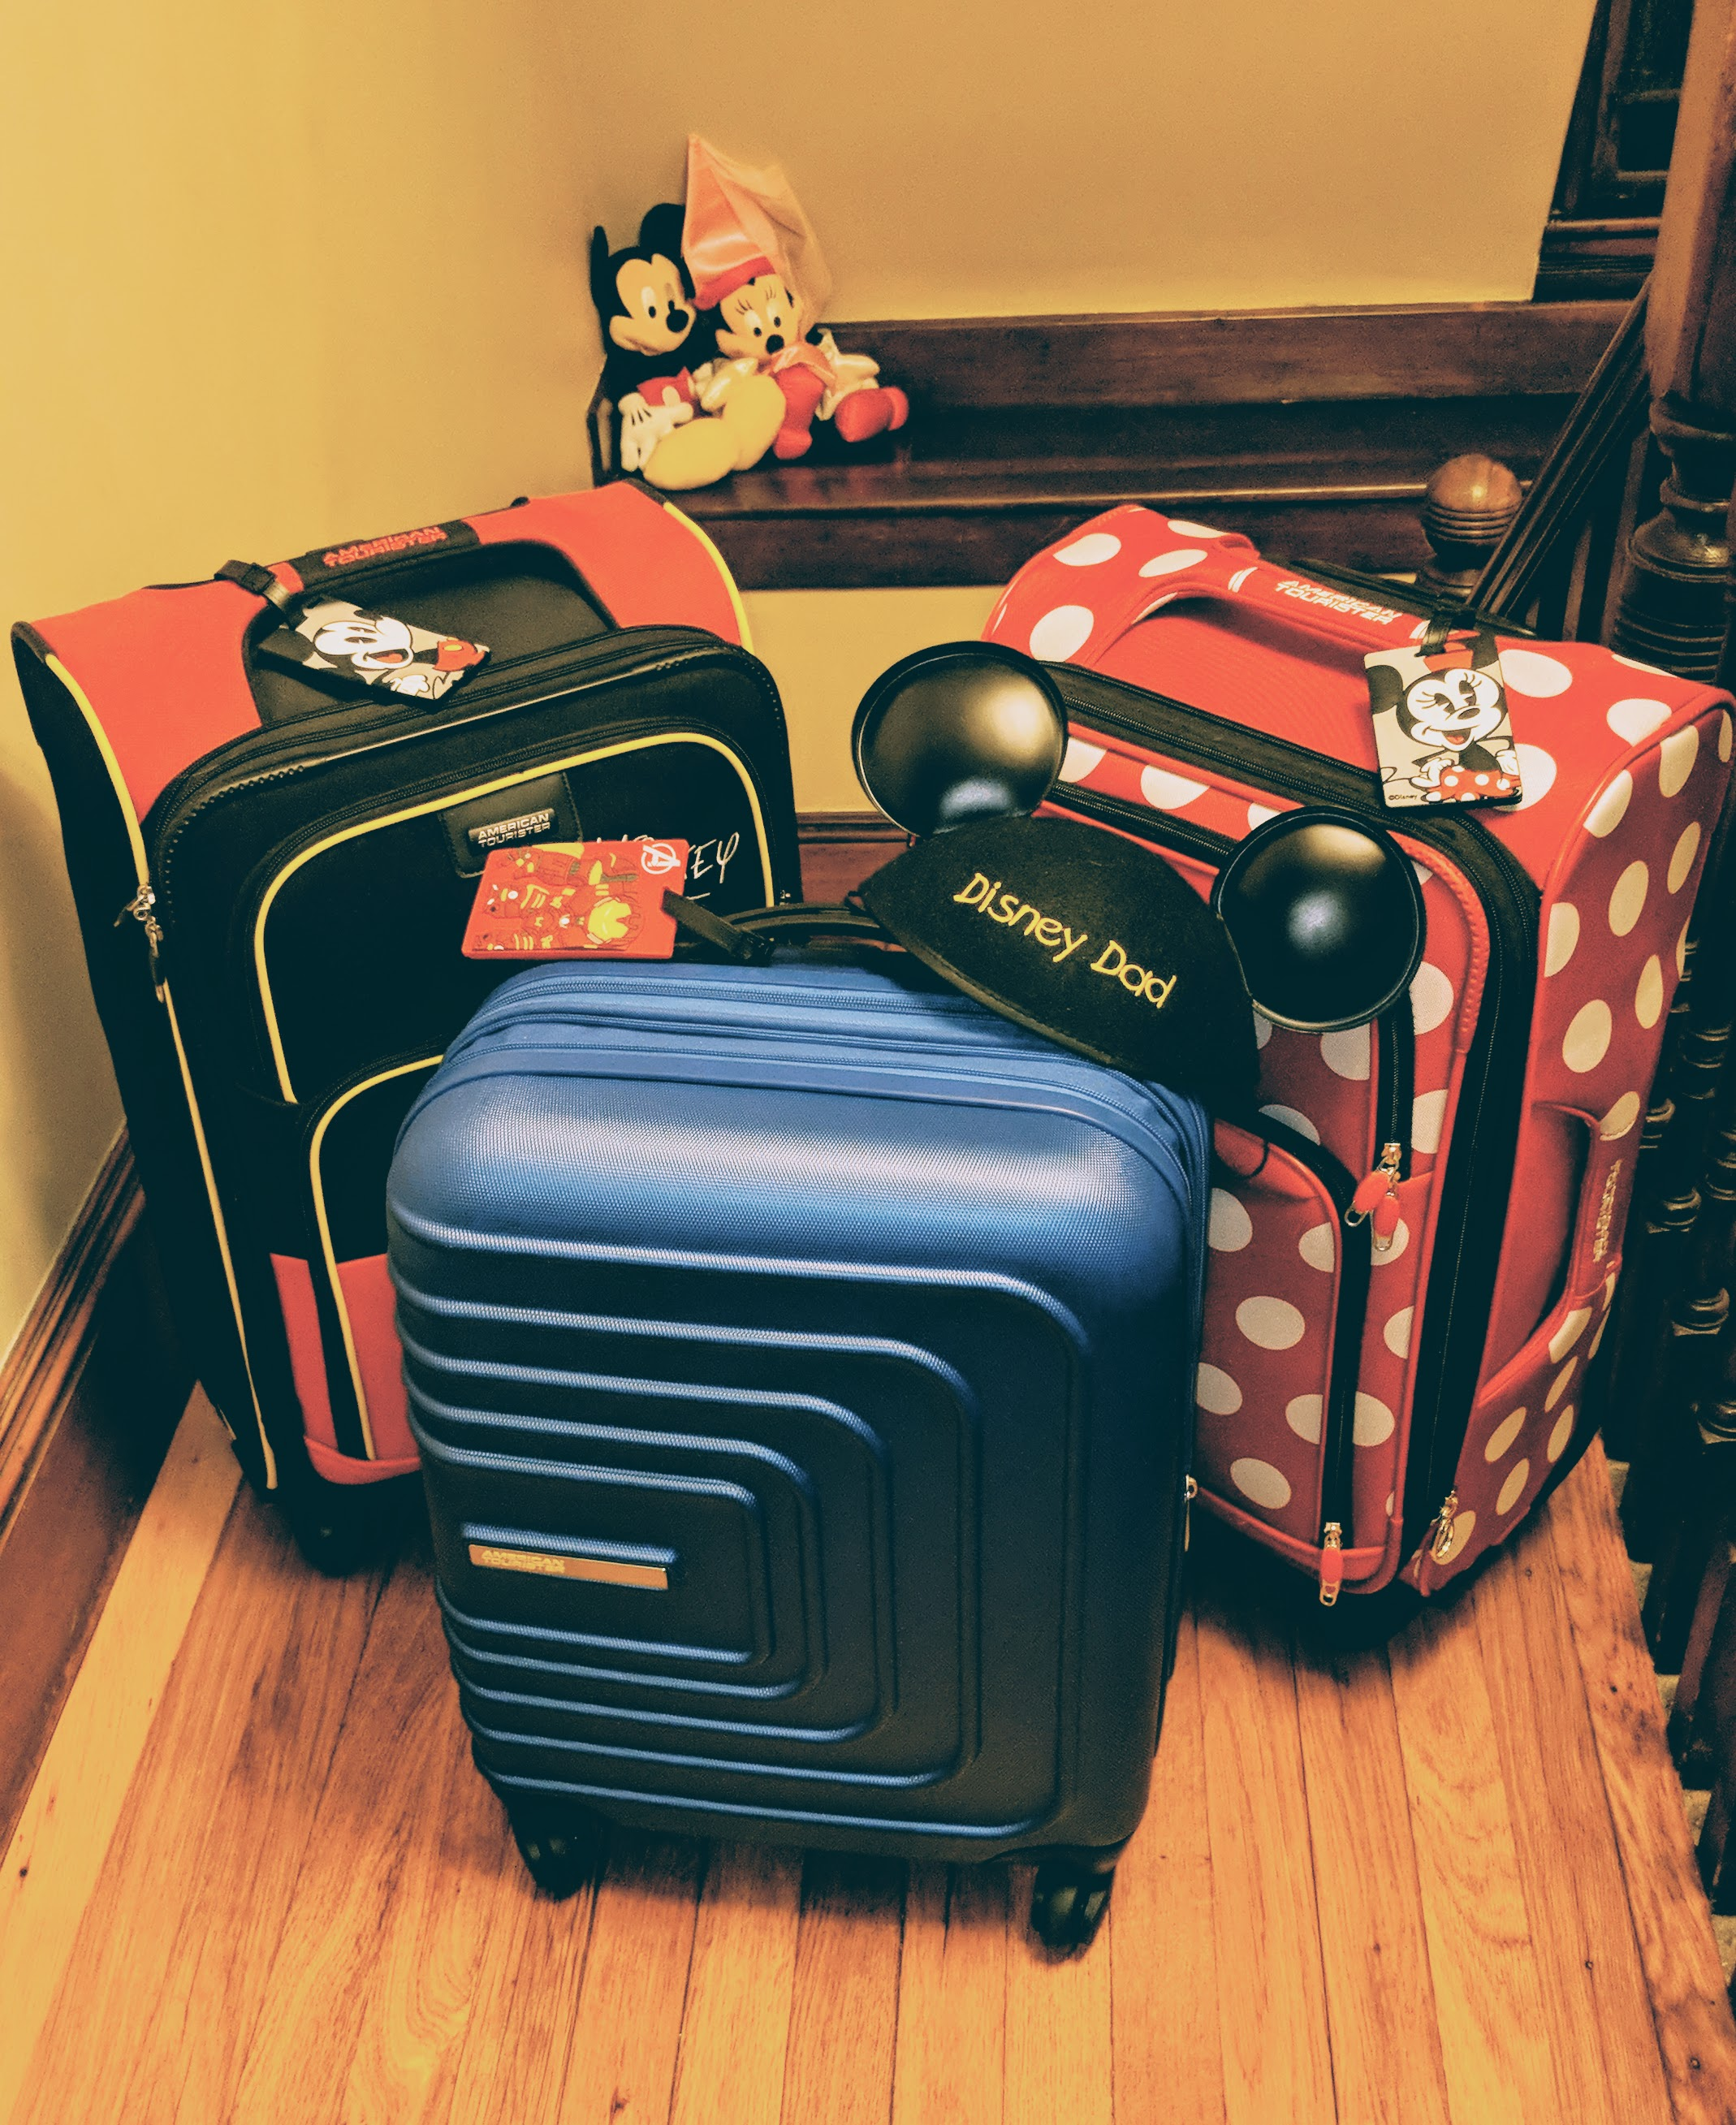 Our Disney Bags are Packed #DisneySMMC